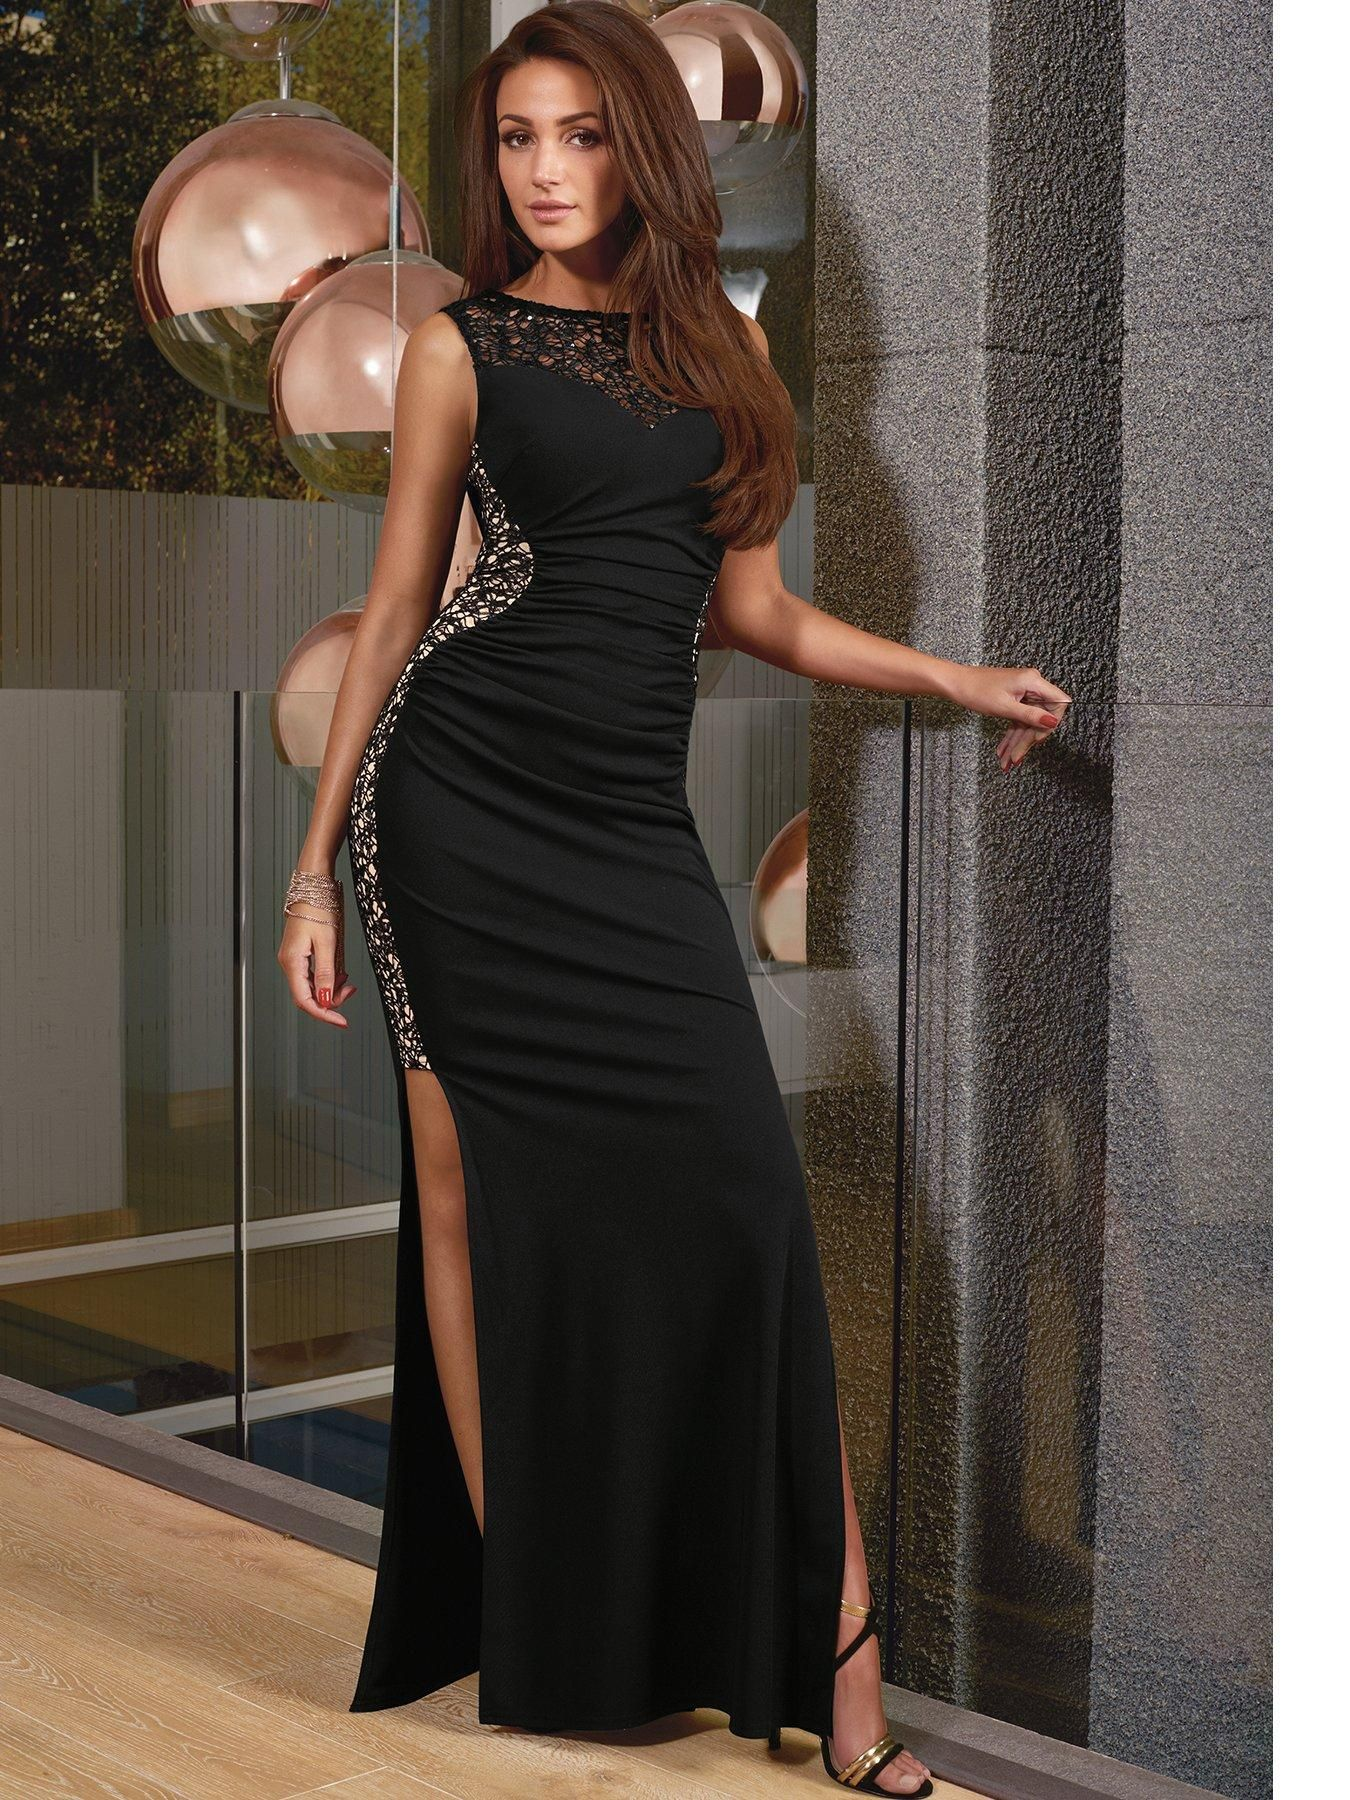 dabe7bb32d Lipsy Michelle Keegan Black Glitter Maxi Dress